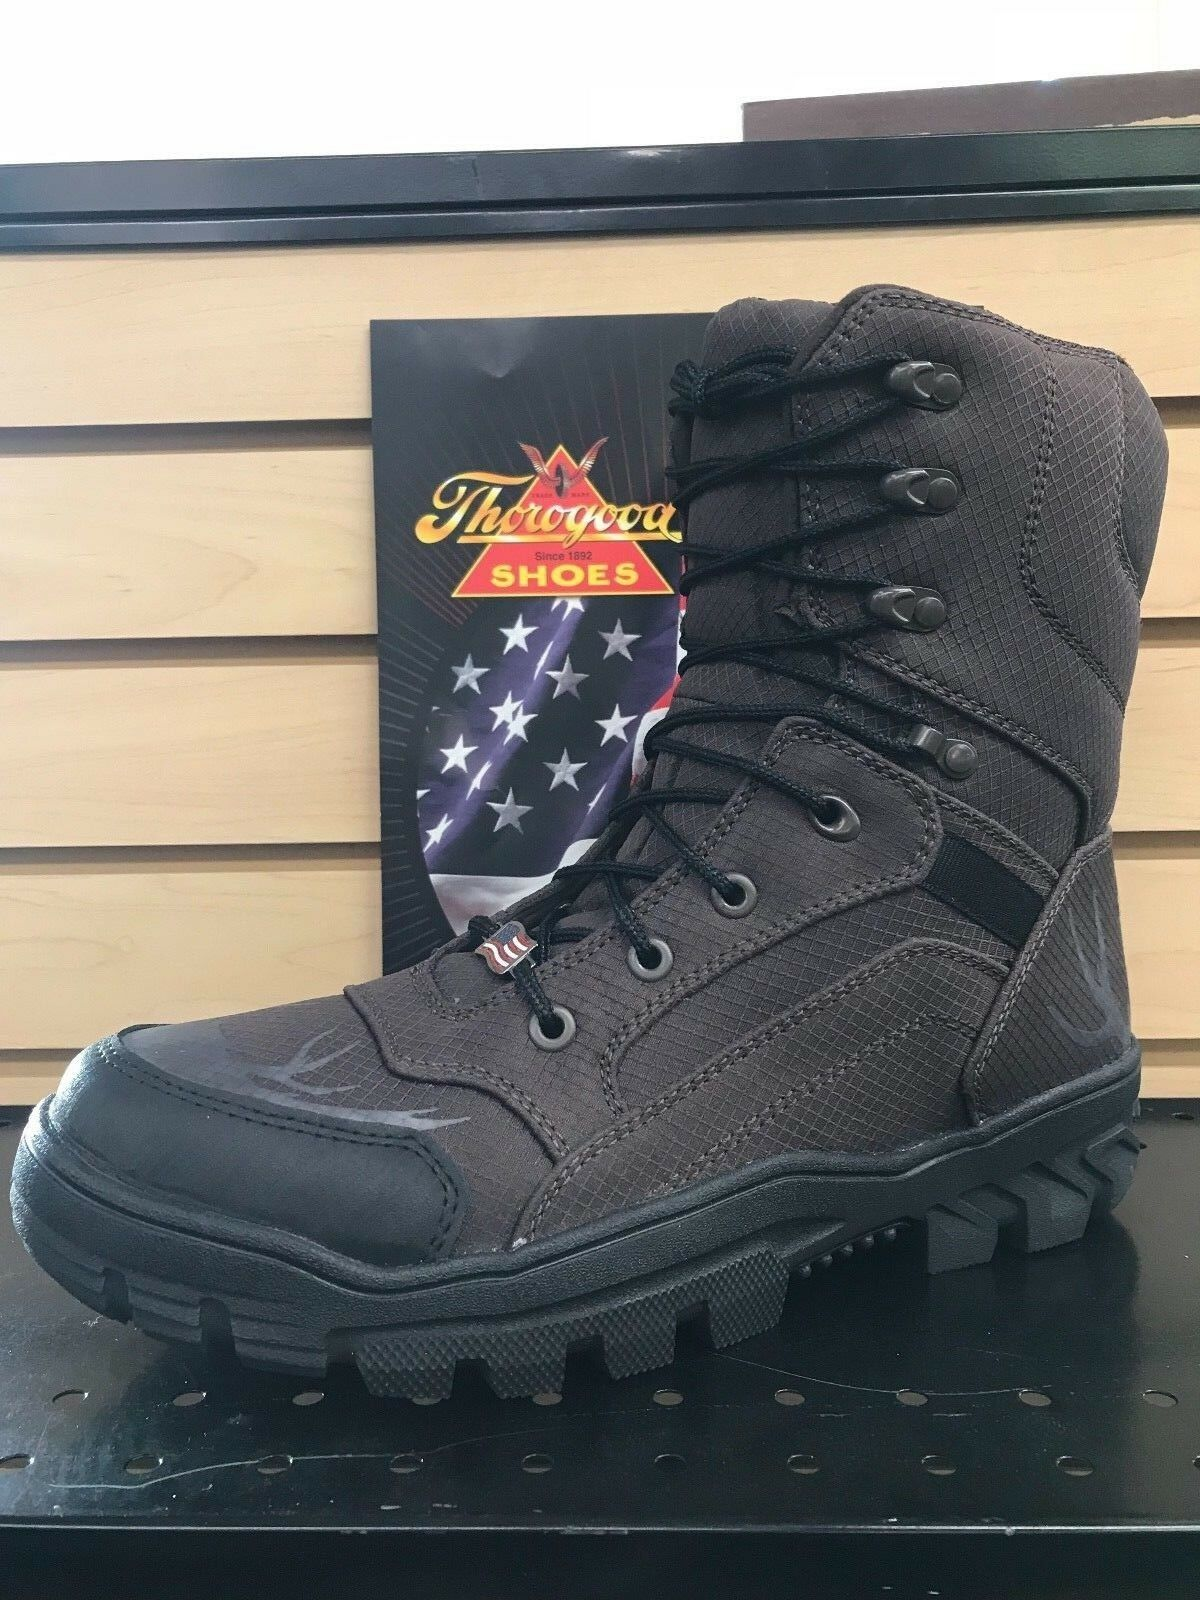 9 M Thgoldgood Boots 8  Apex Predator GTX Made In USA Waterproof Brown Outdoor